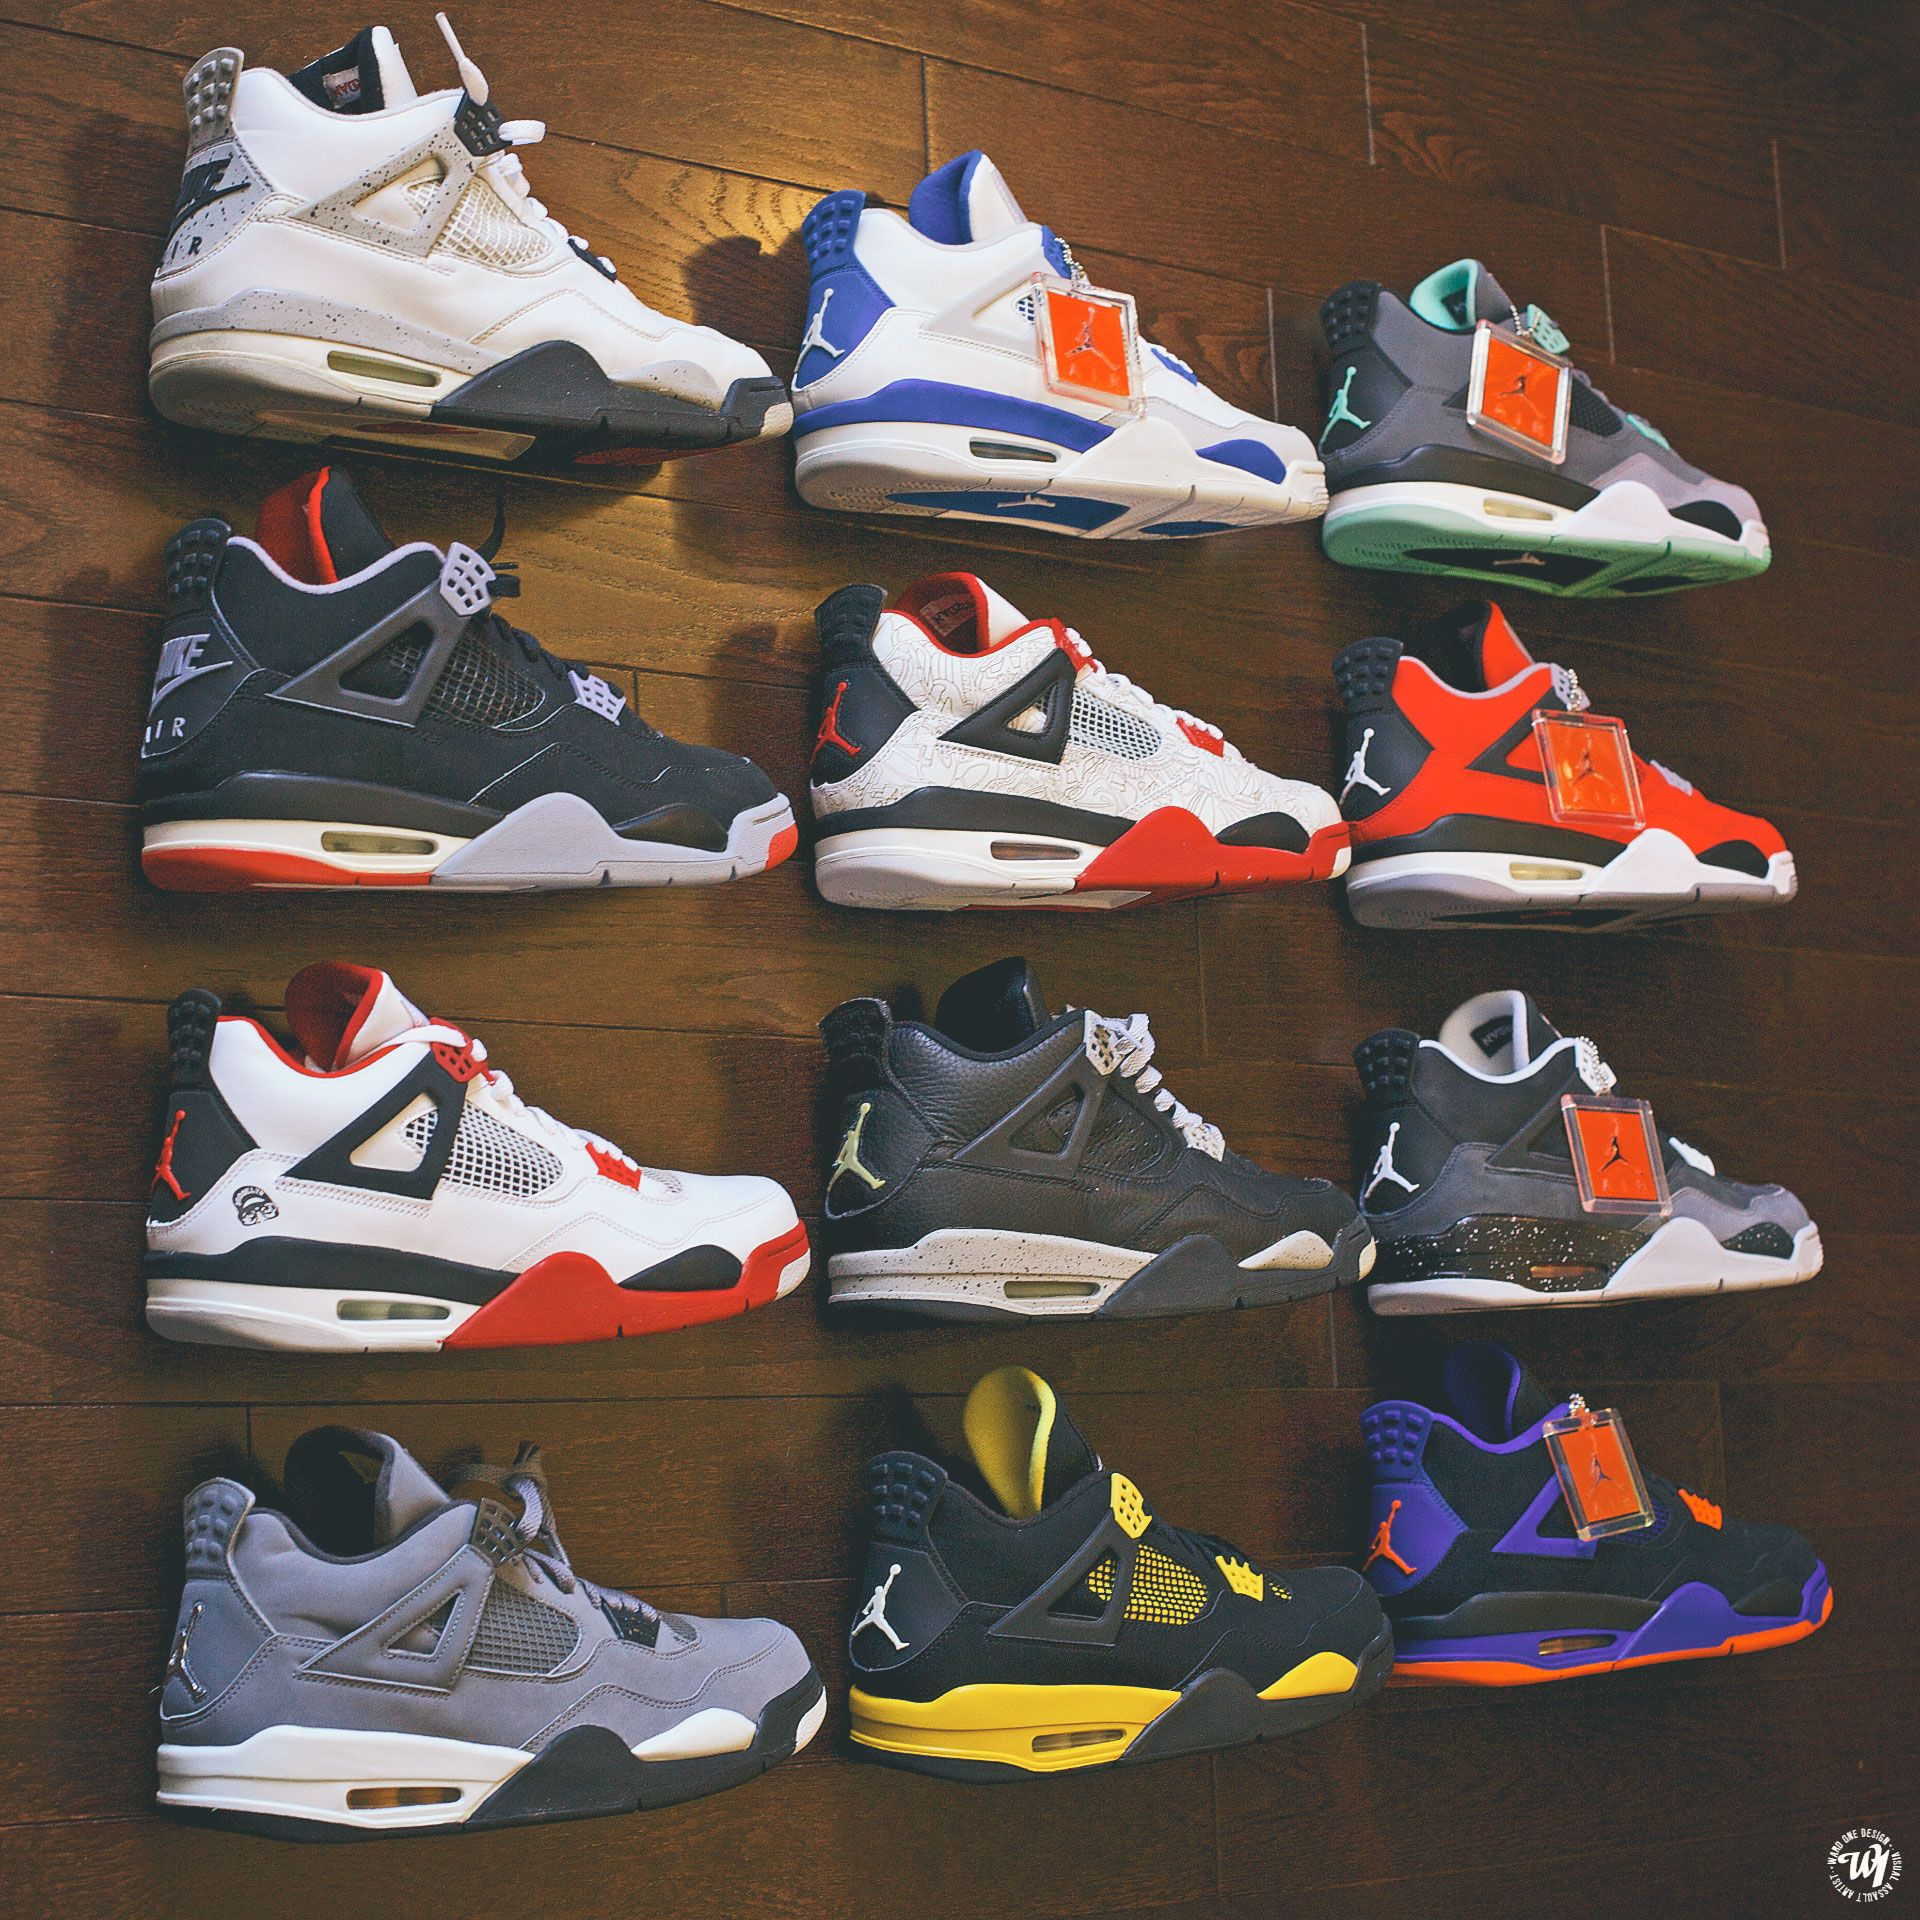 5158e78ccb8e The Air Jordan 4 took the world by storm in 1989. Along with a career  season came a career sneaker.Tinker Hatfield once again designed this shoe.